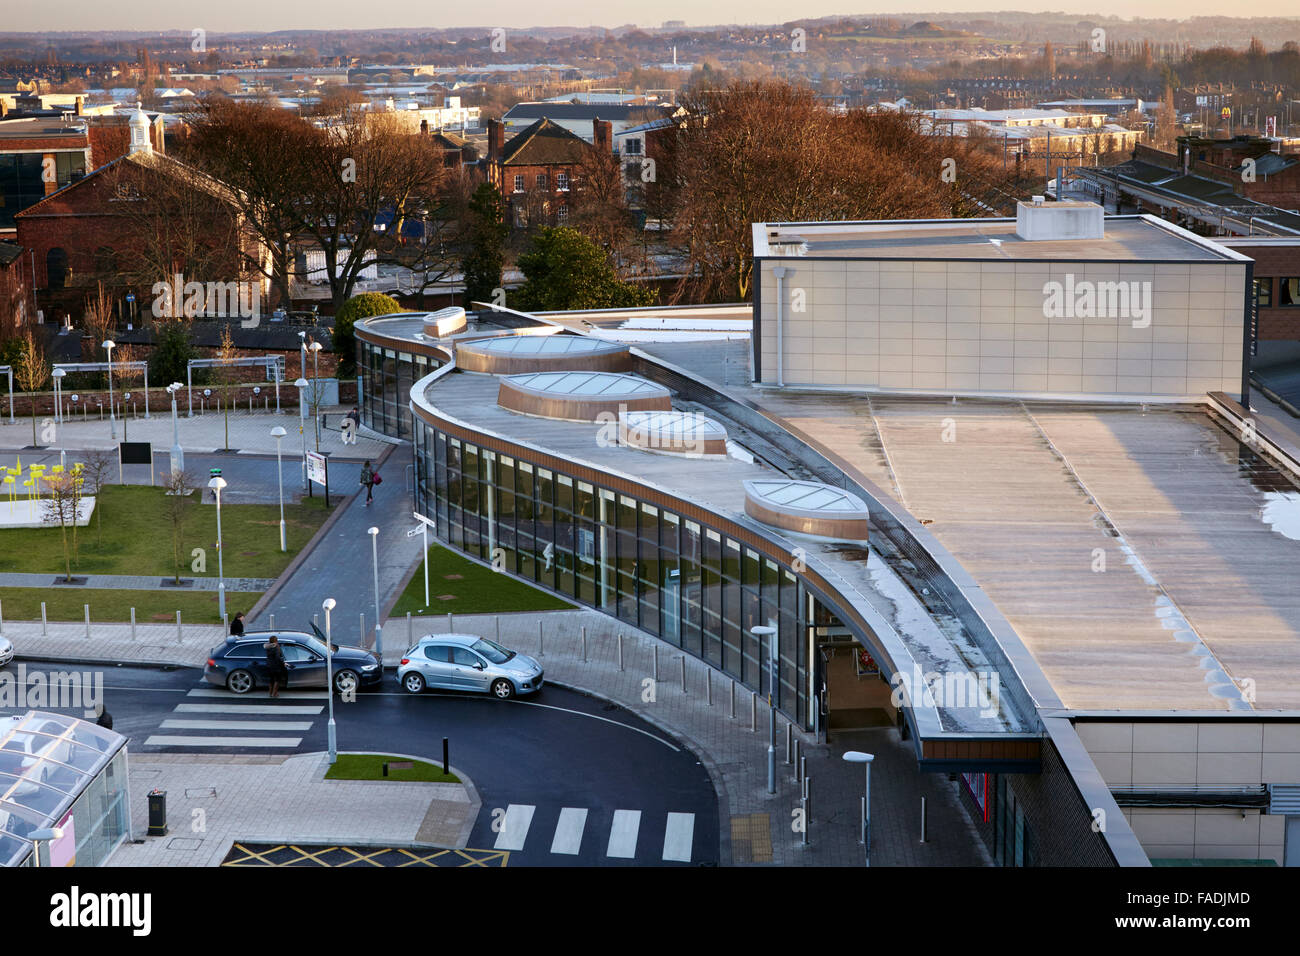 Elevated view of new Wakefield Westgate railway station with view over roof and across the city towards Sandal - Stock Image